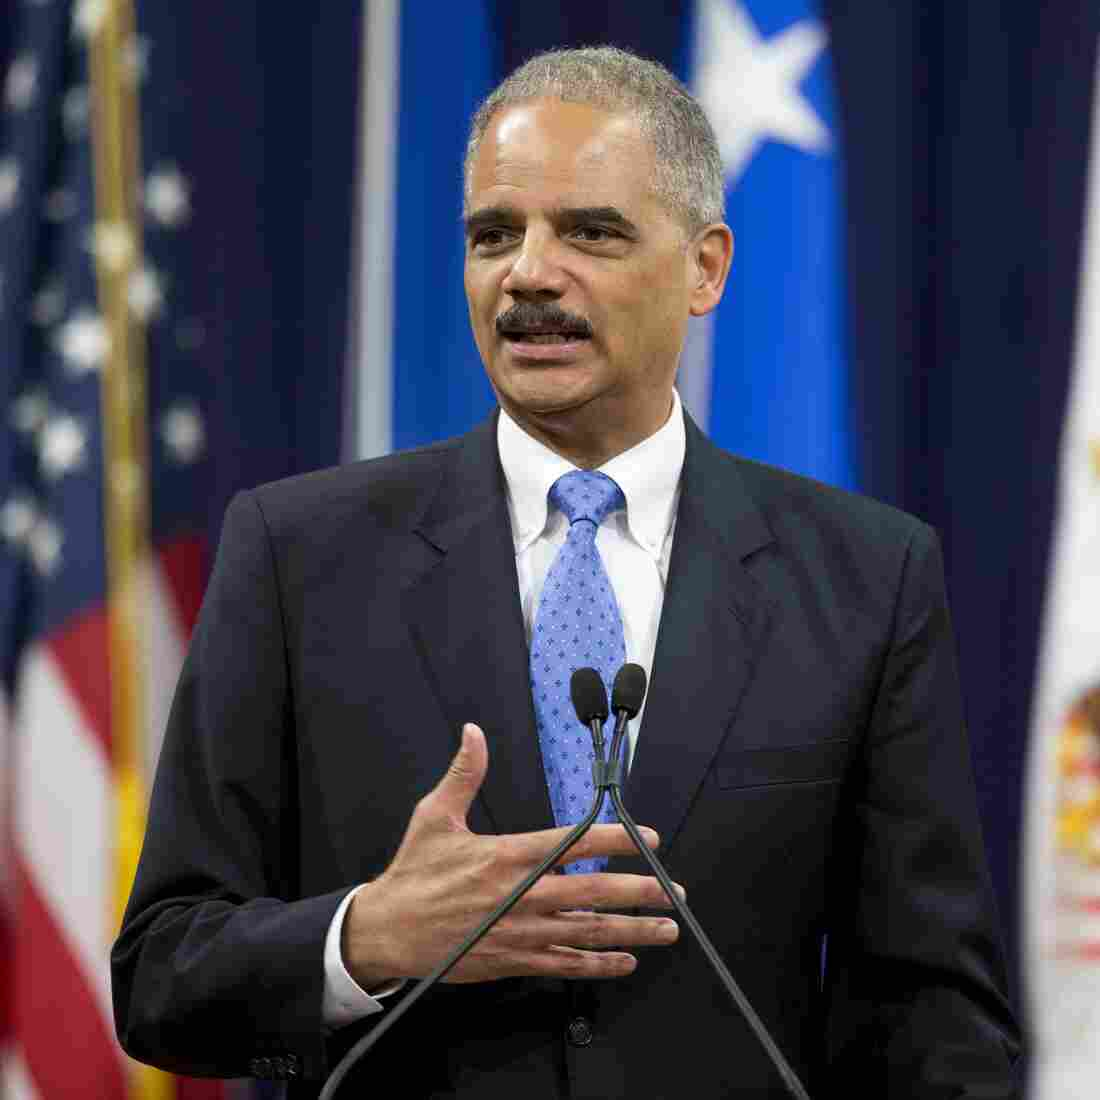 With Holder In The Lead, Sentencing Reform Gains Momentum